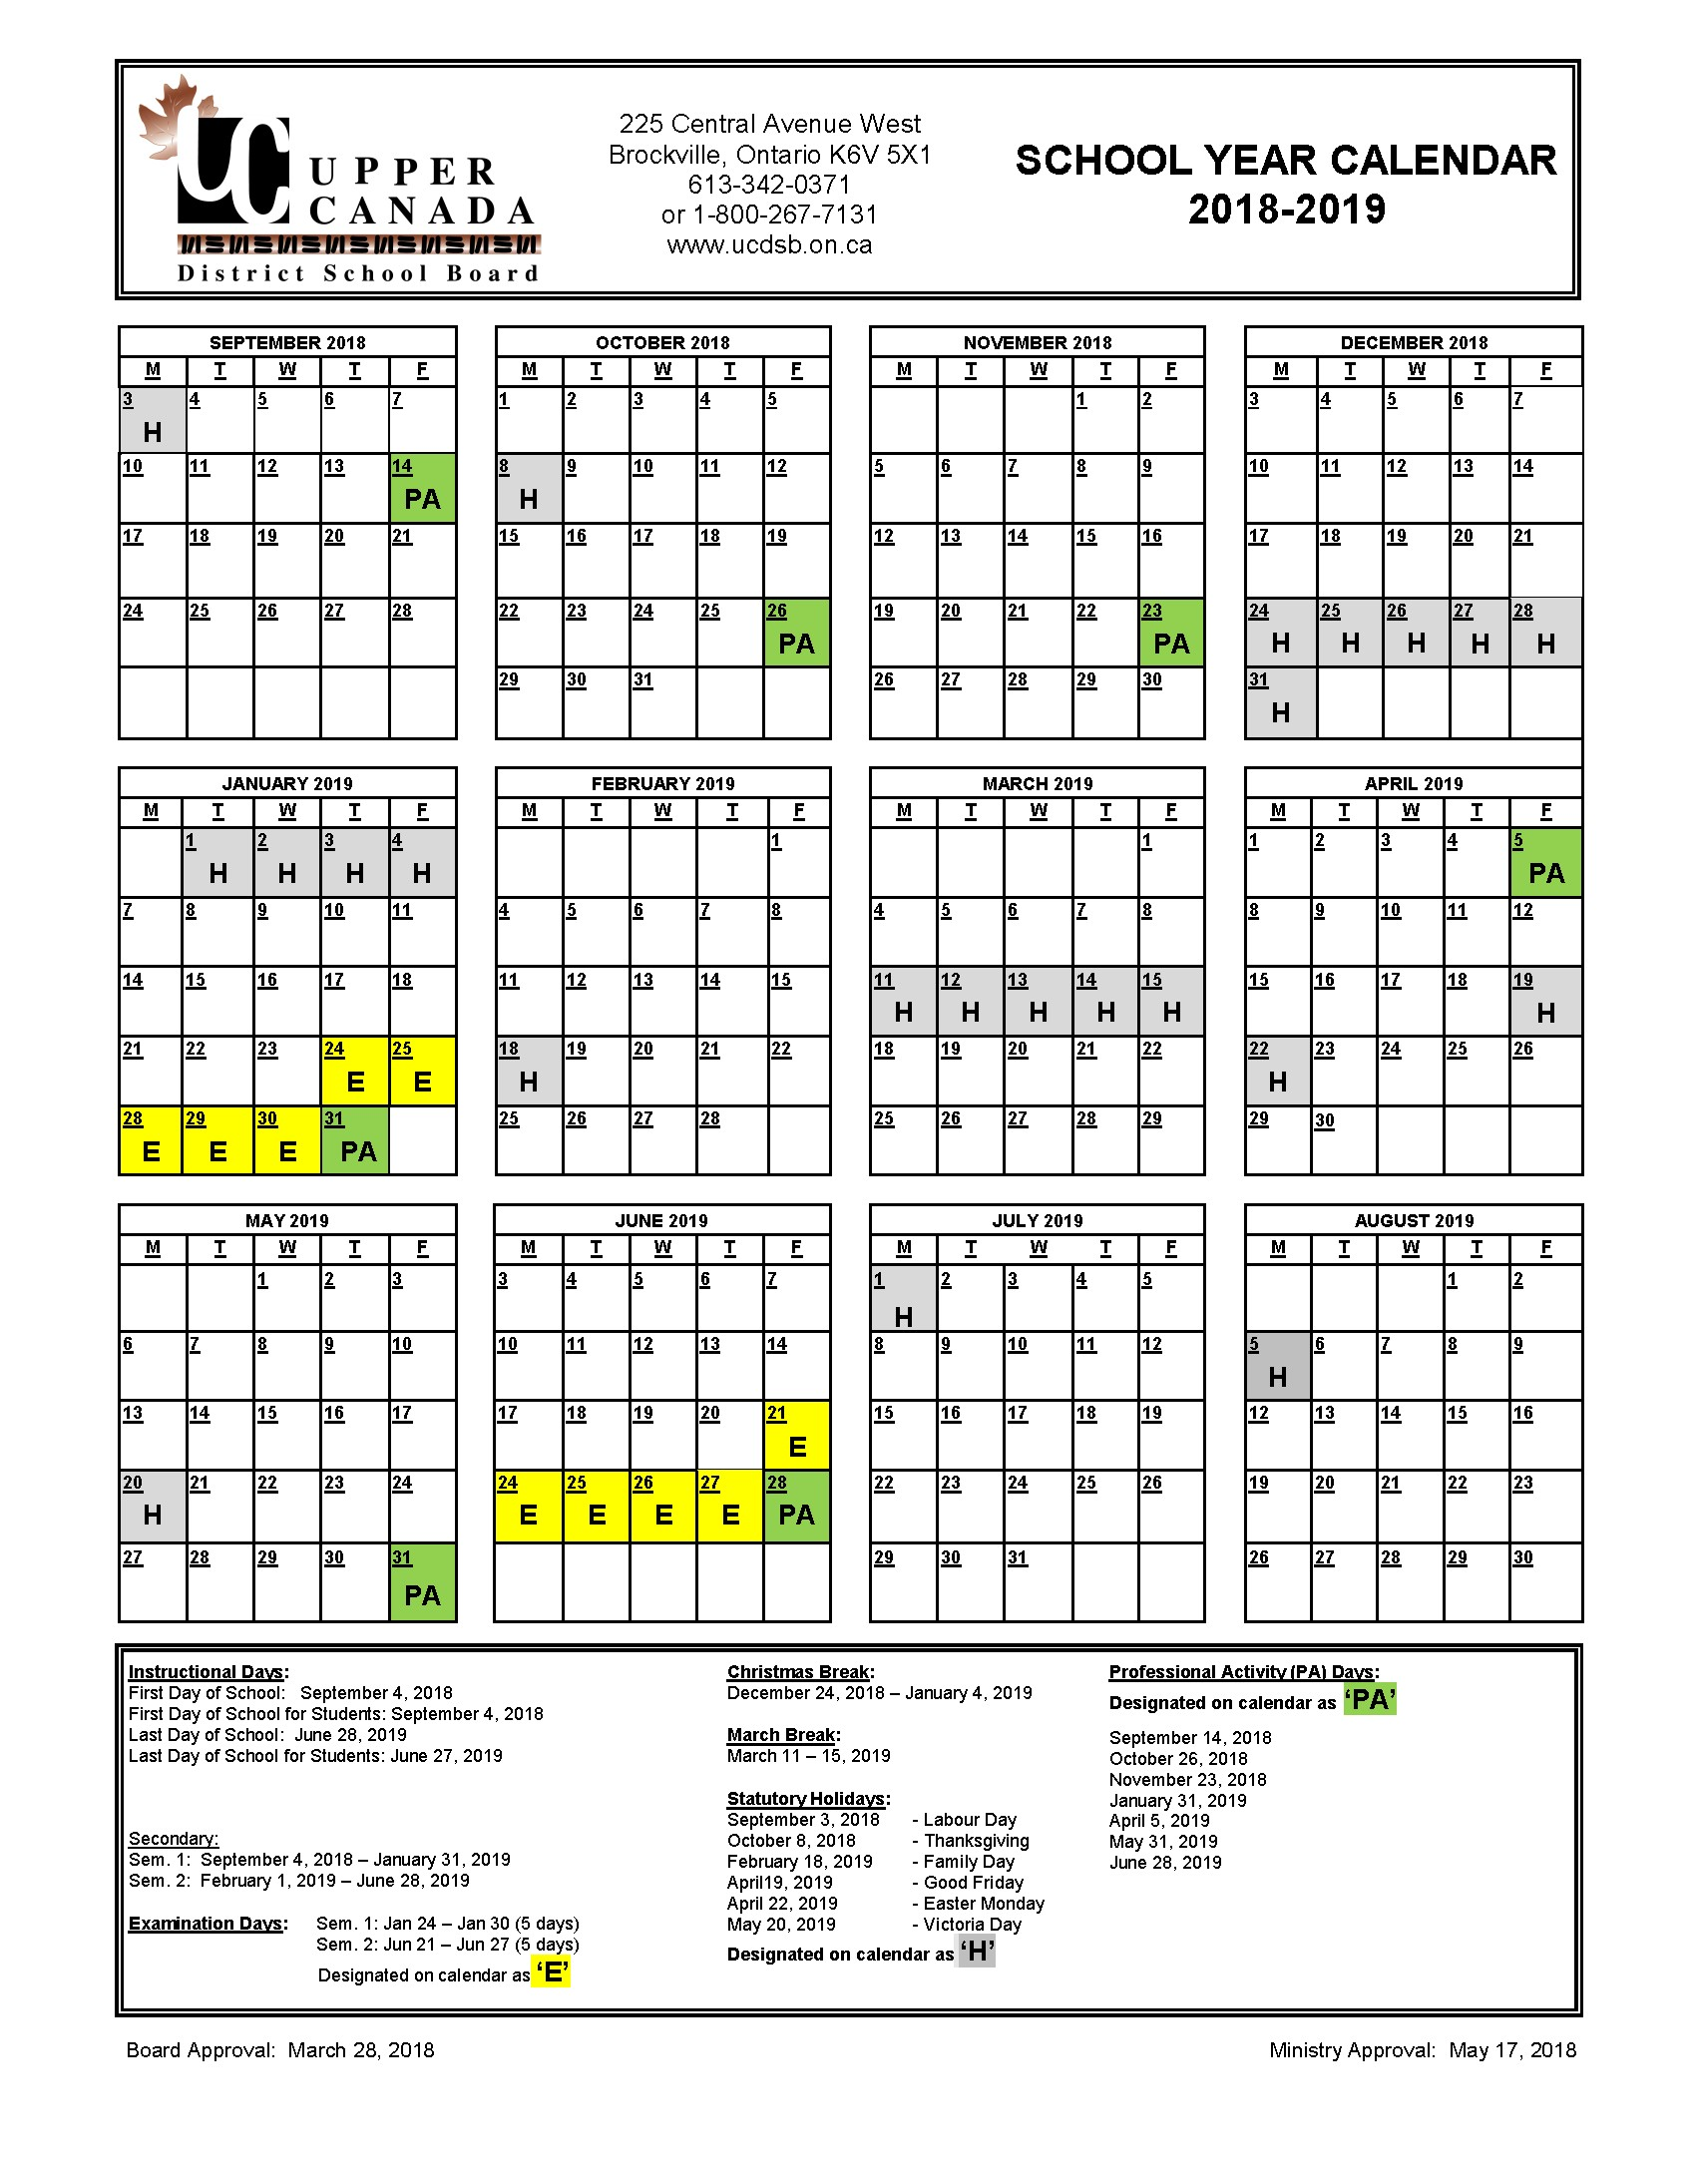 Calendario Escolar 2019 Kinder Más Reciente 2018 2019 School Year Calendar Upper Canada District School Board Of Calendario Escolar 2019 Kinder Más Populares Calendario Escolar 2018 2019 Sep Calendario Oficial